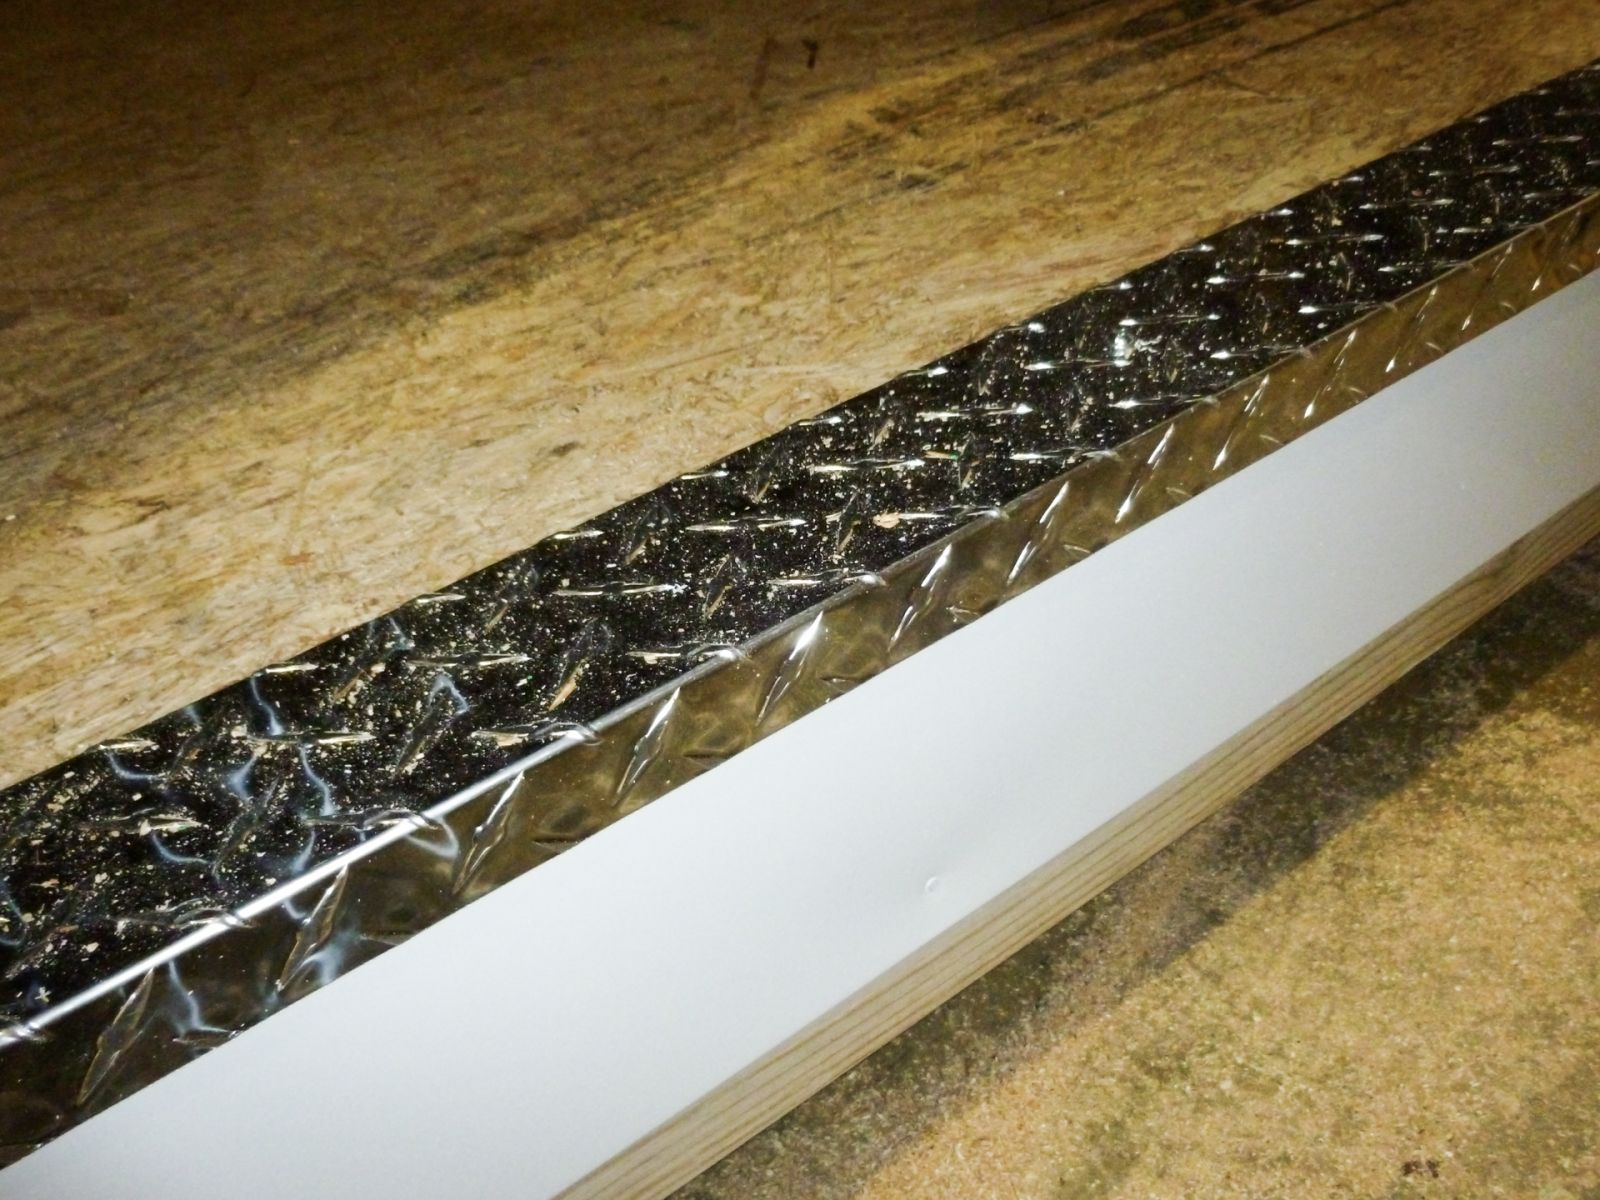 Diamond plate door threshold on a prefab shed in Kentucky